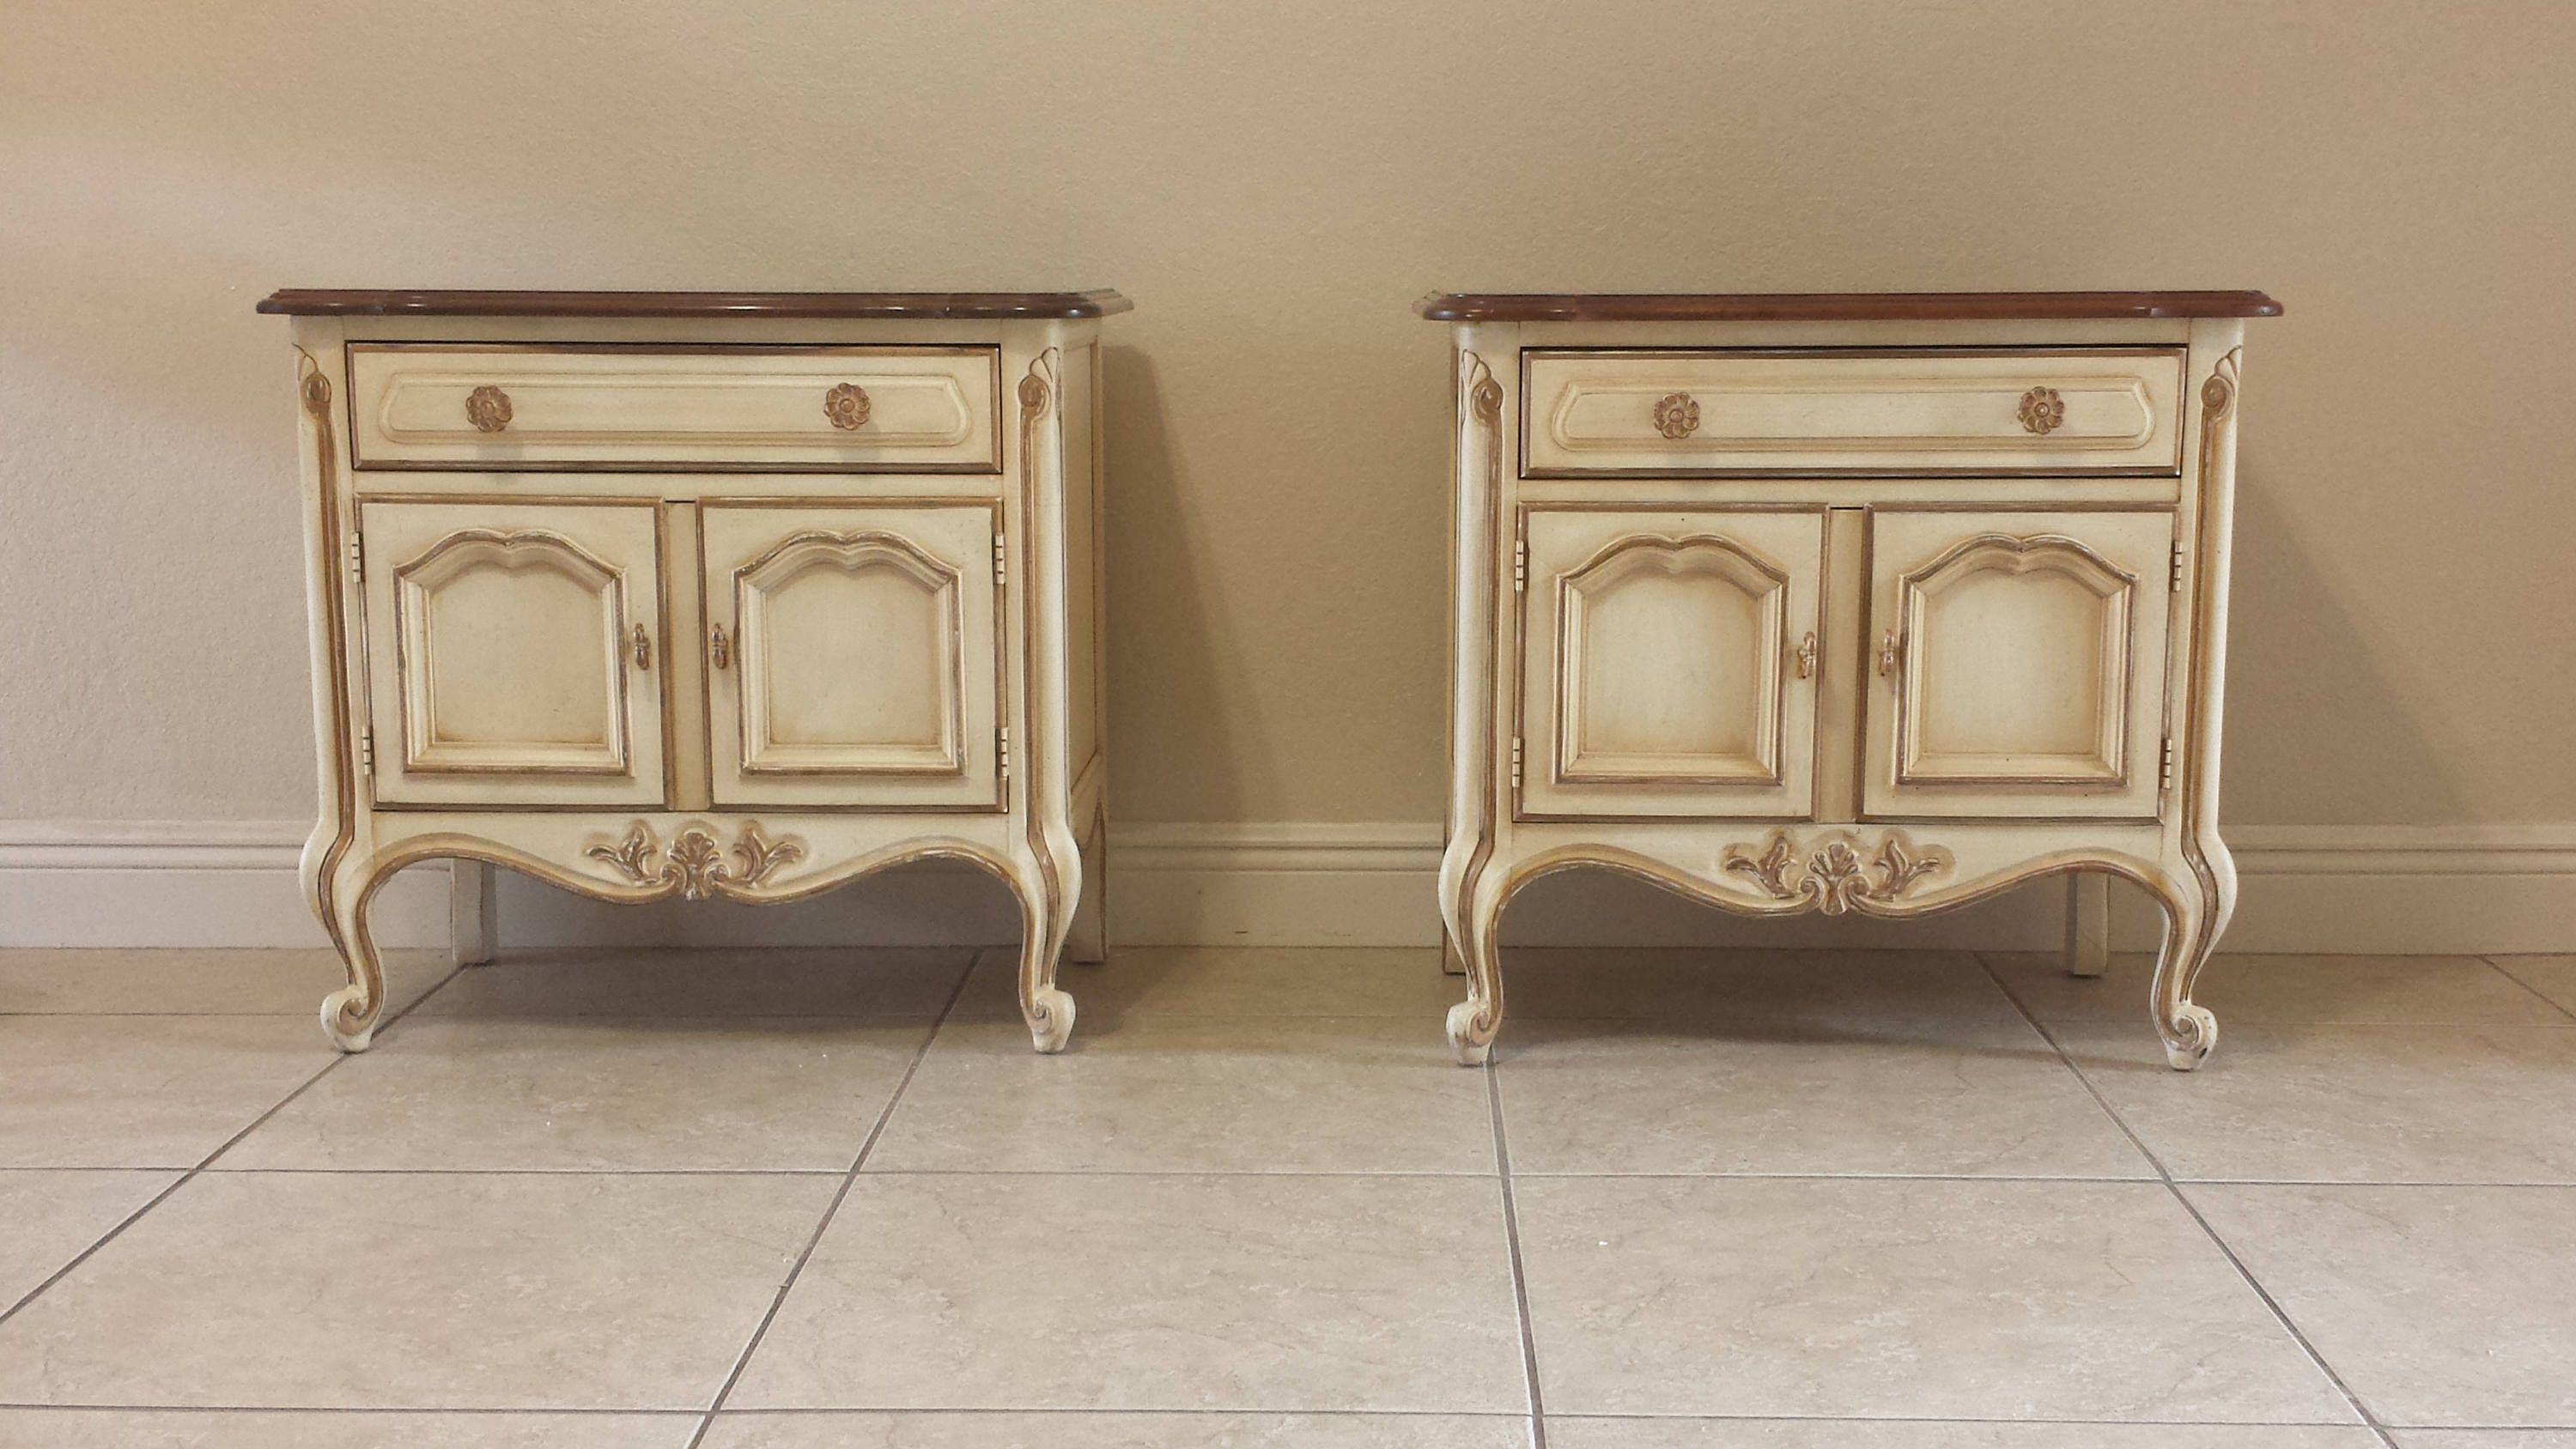 hot sale online 3eded 251bd Gorgeous Drexel Touraine French Country Nightstands ...